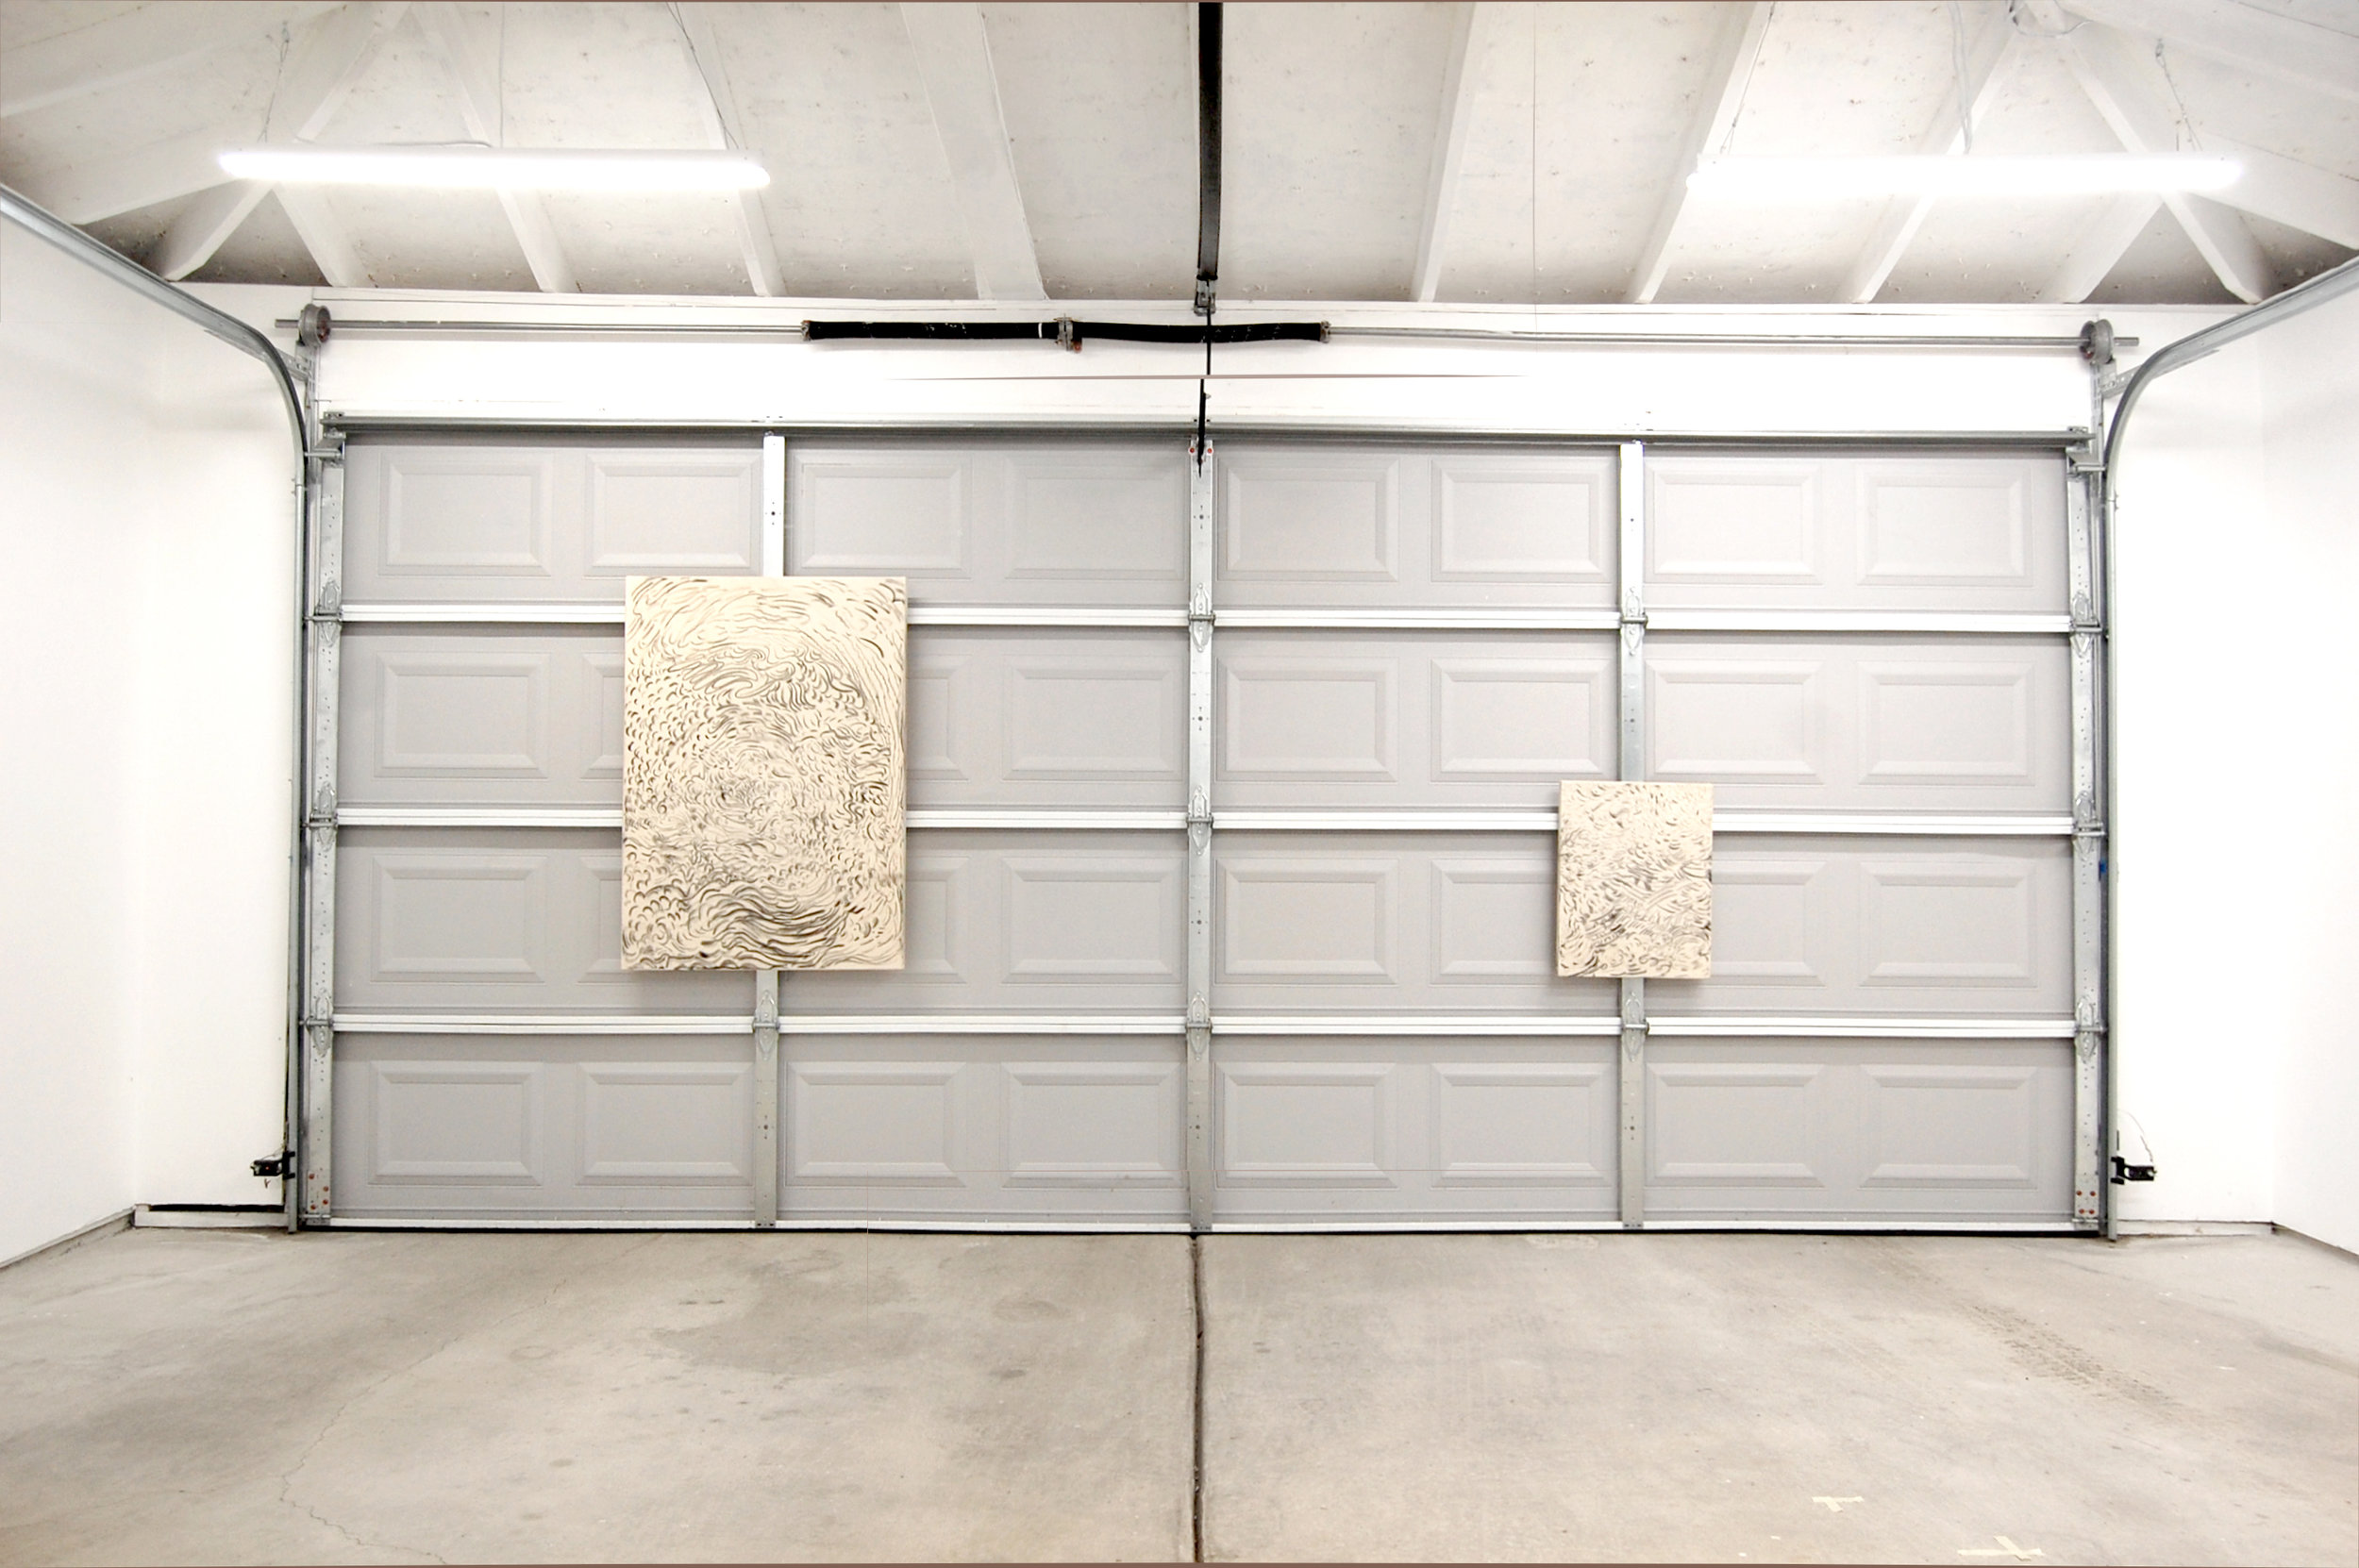 Forced Autumn , installation view at Chicago Manual Style, 2017. Ricardo Morales-Hernández,  Fuego — SDG-017-002 , 2017, 30 x 40 inches, andViento  SDG-017-005 , 2017, 16 x 20 inches, artist-made charcoal on canvas.